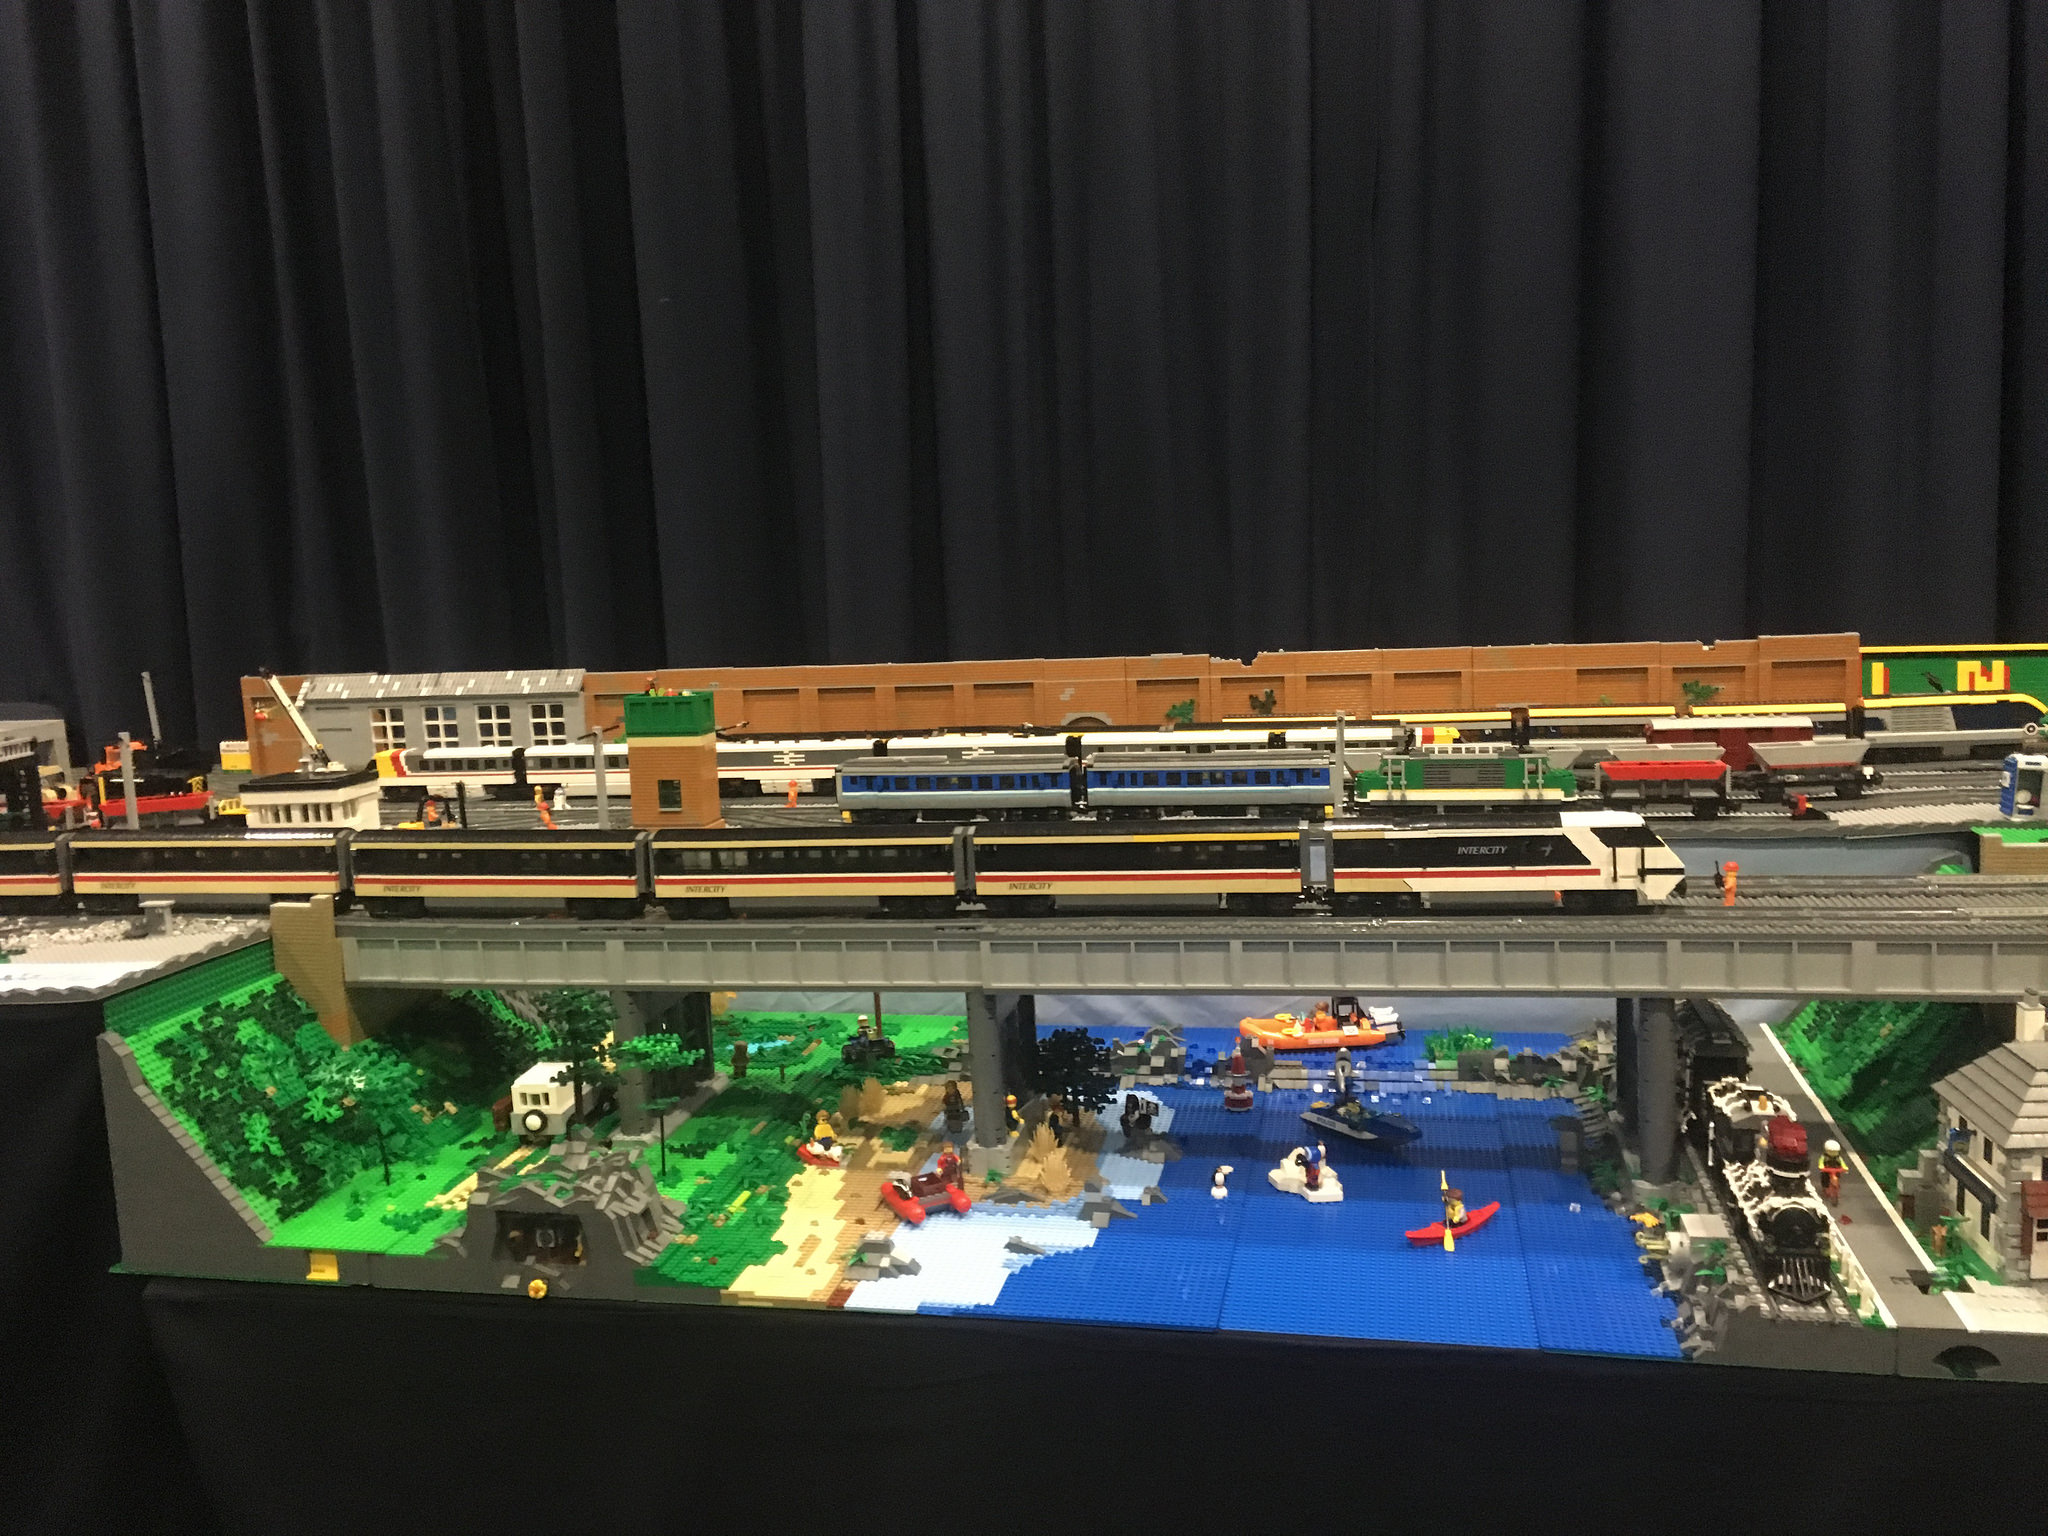 LEGO railway bridge and valley by Bricks McGee